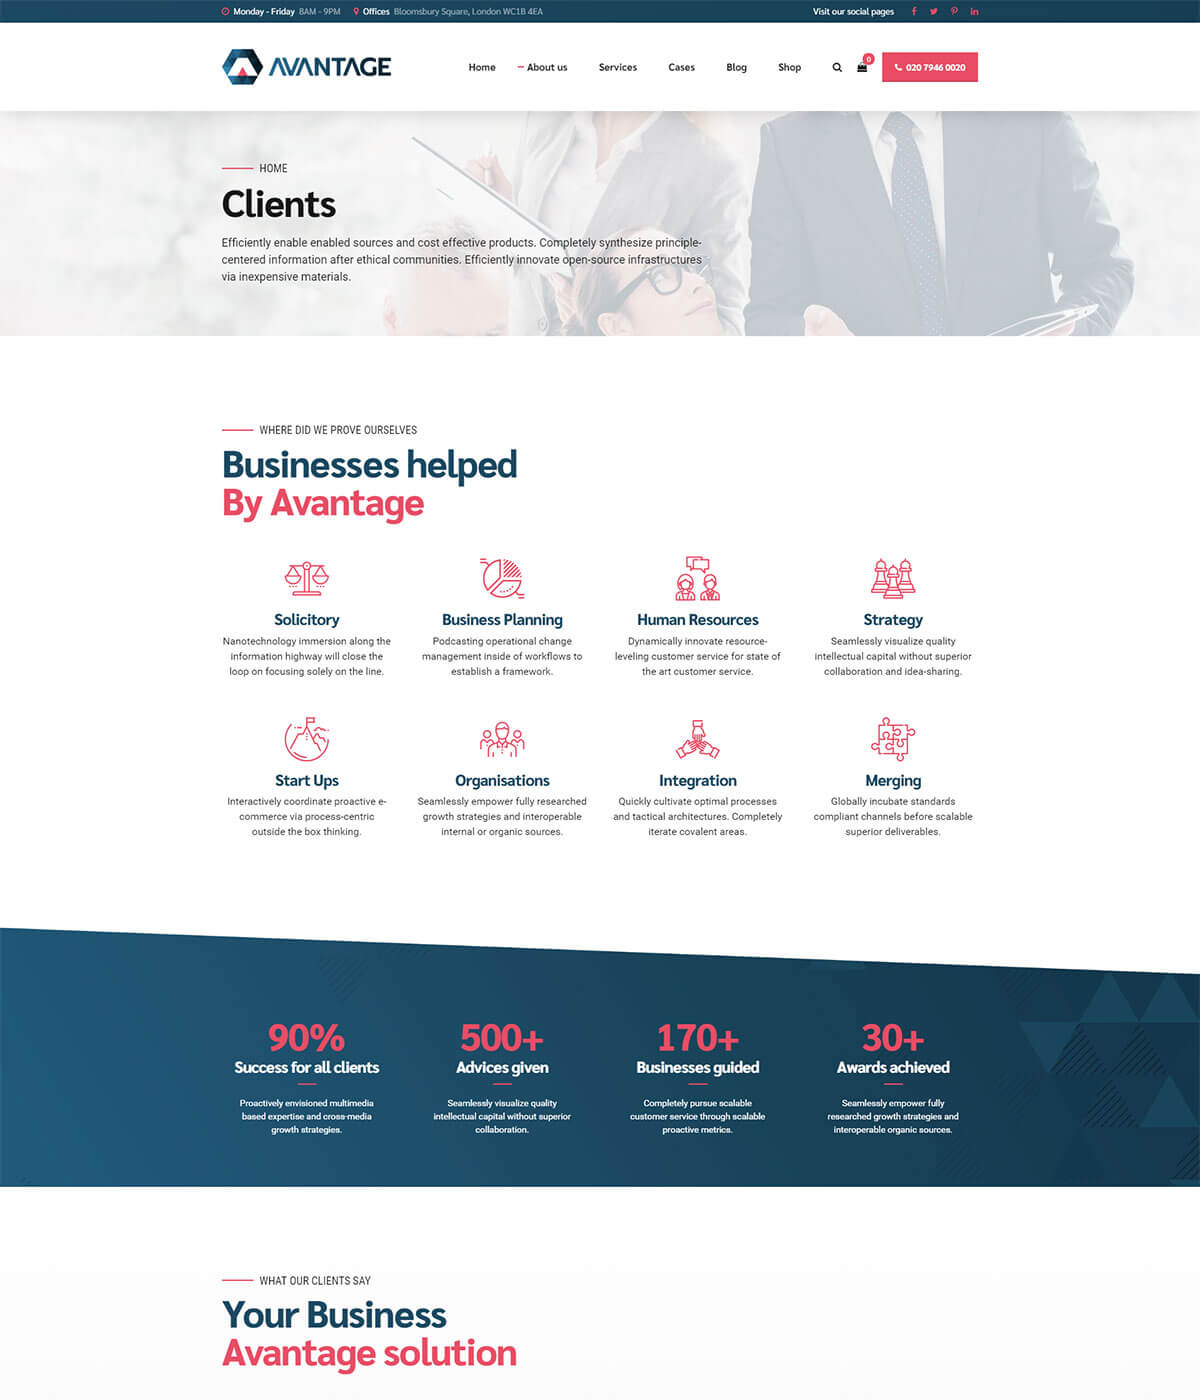 http://avantage.bold-themes.com/wp-content/uploads/2019/05/business-04-clients.jpg